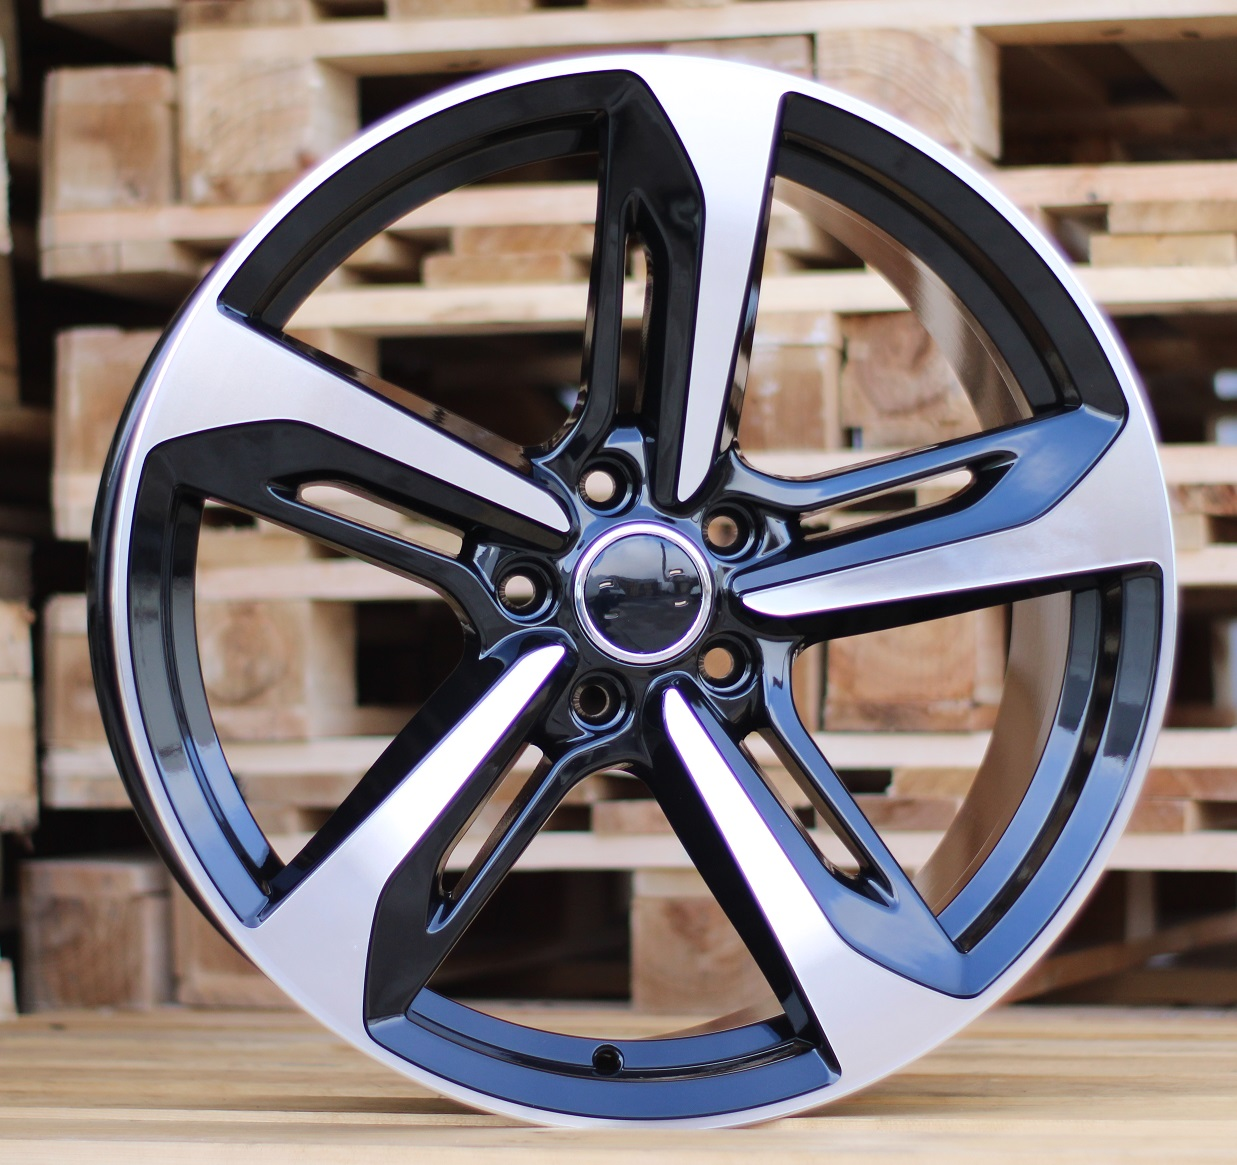 A19X8.5 5x112 ET32 66.45 BY1305 MB+Powder Coating RWR AUD (+3eur) (K5)## 8.5x19 ET32 5x112